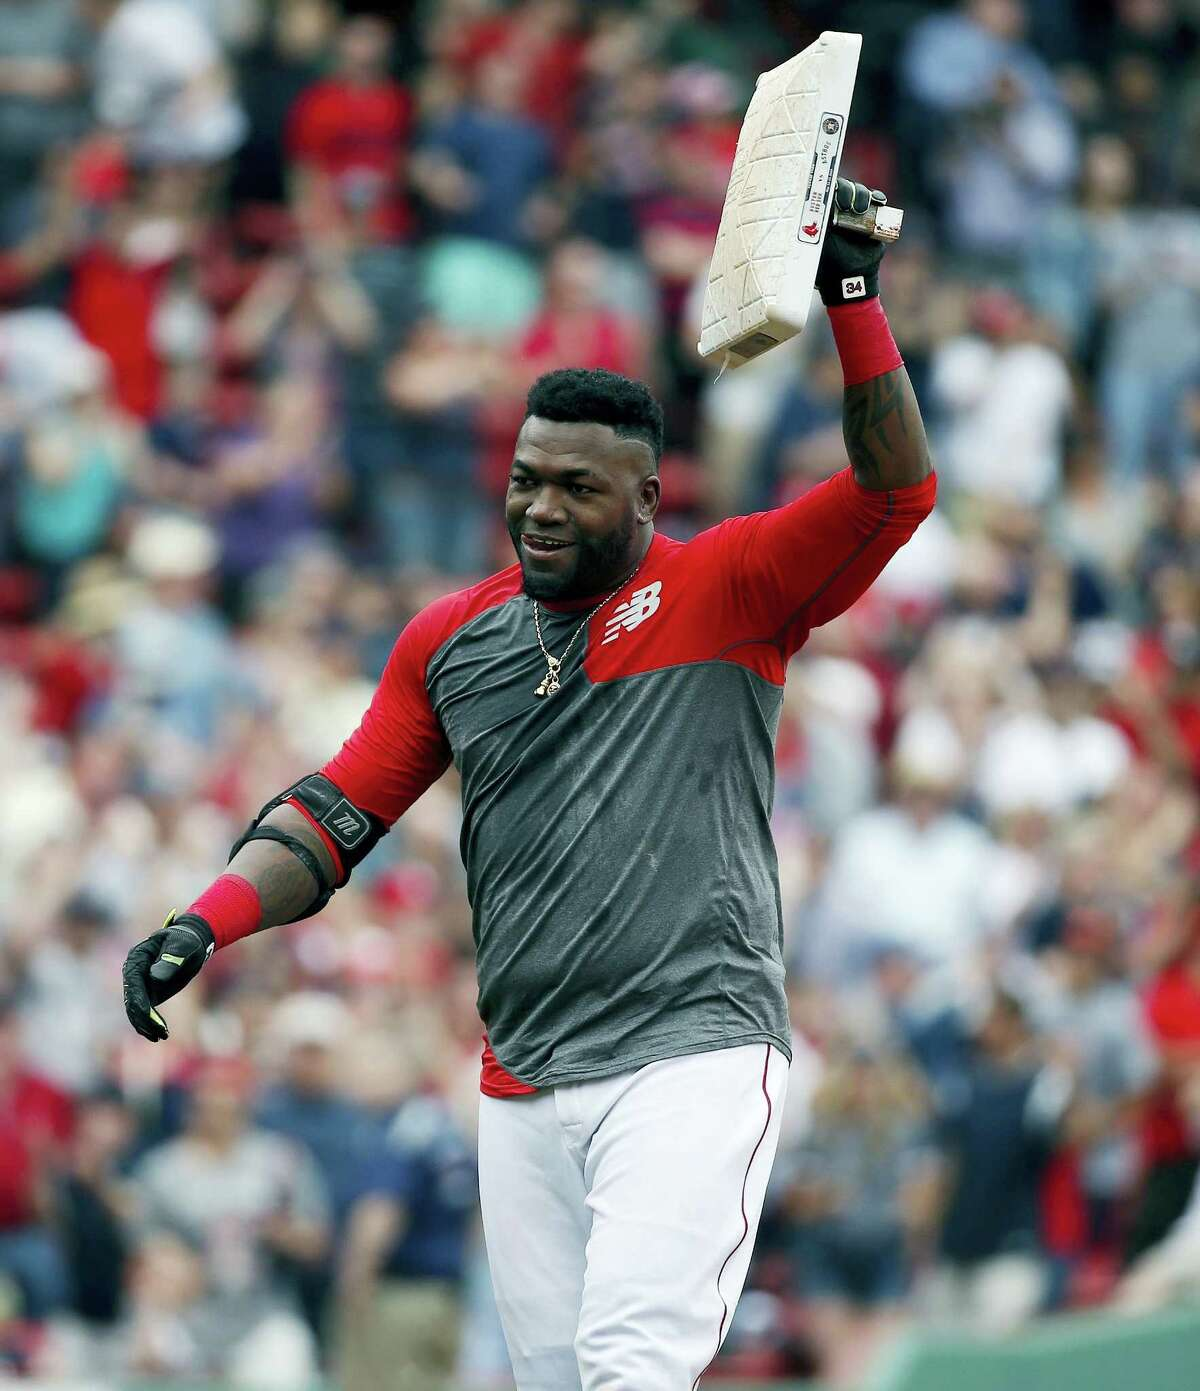 David Ortiz holds up second base after hitting his game-winning RBI double. It was the 600th double of Ortiz's career.